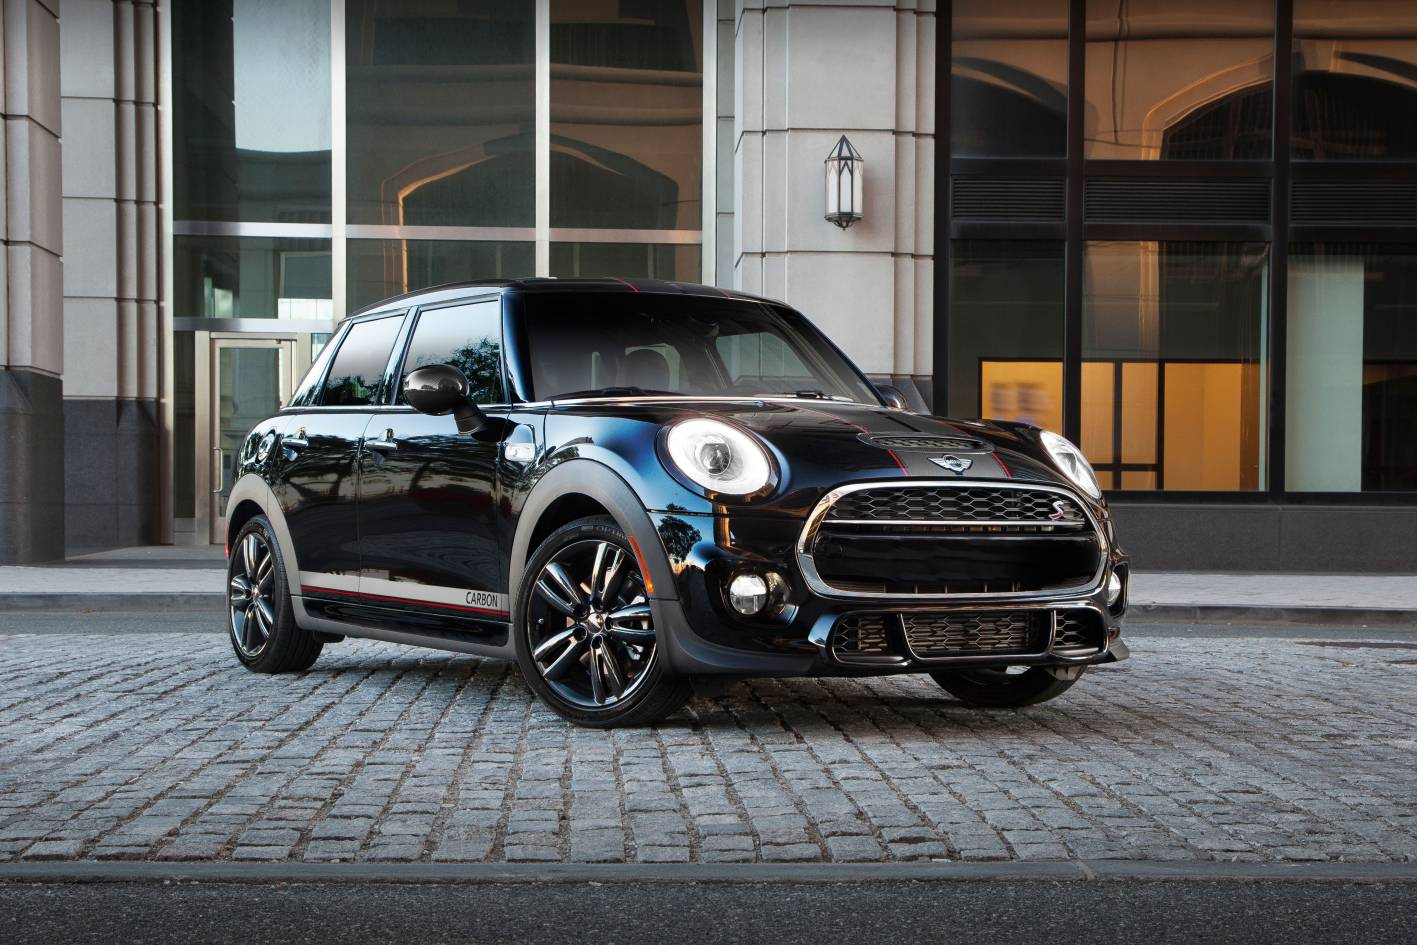 2016 MINI Carbon Edition Launched - Price, Features and Specifications